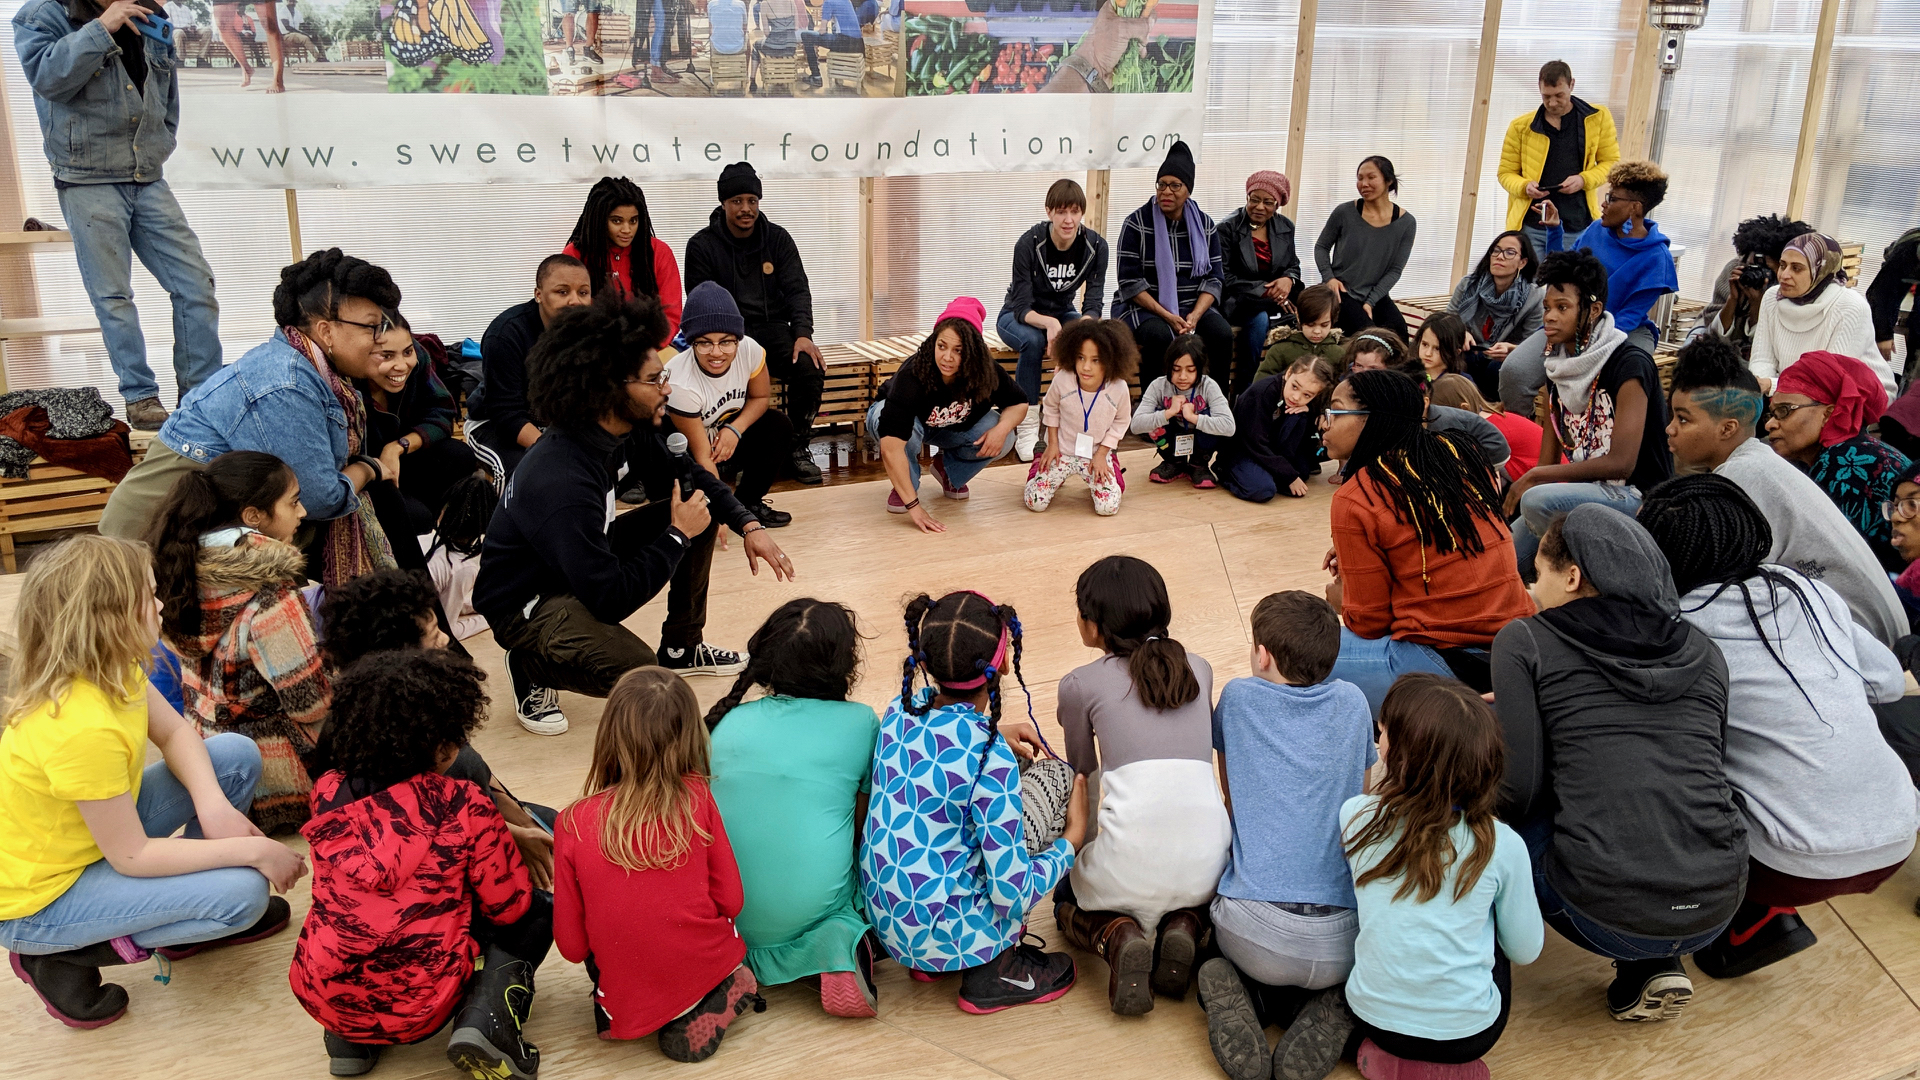 Urban Bush Women artists with Chicago Free School students in the Thought Barn at Sweet Water Foundation, from left: Du'Bois A'Keen, Love Muwwakkil, Cyrah Ward, and Chanon Judson. Photo by Zachary Whittenburg.